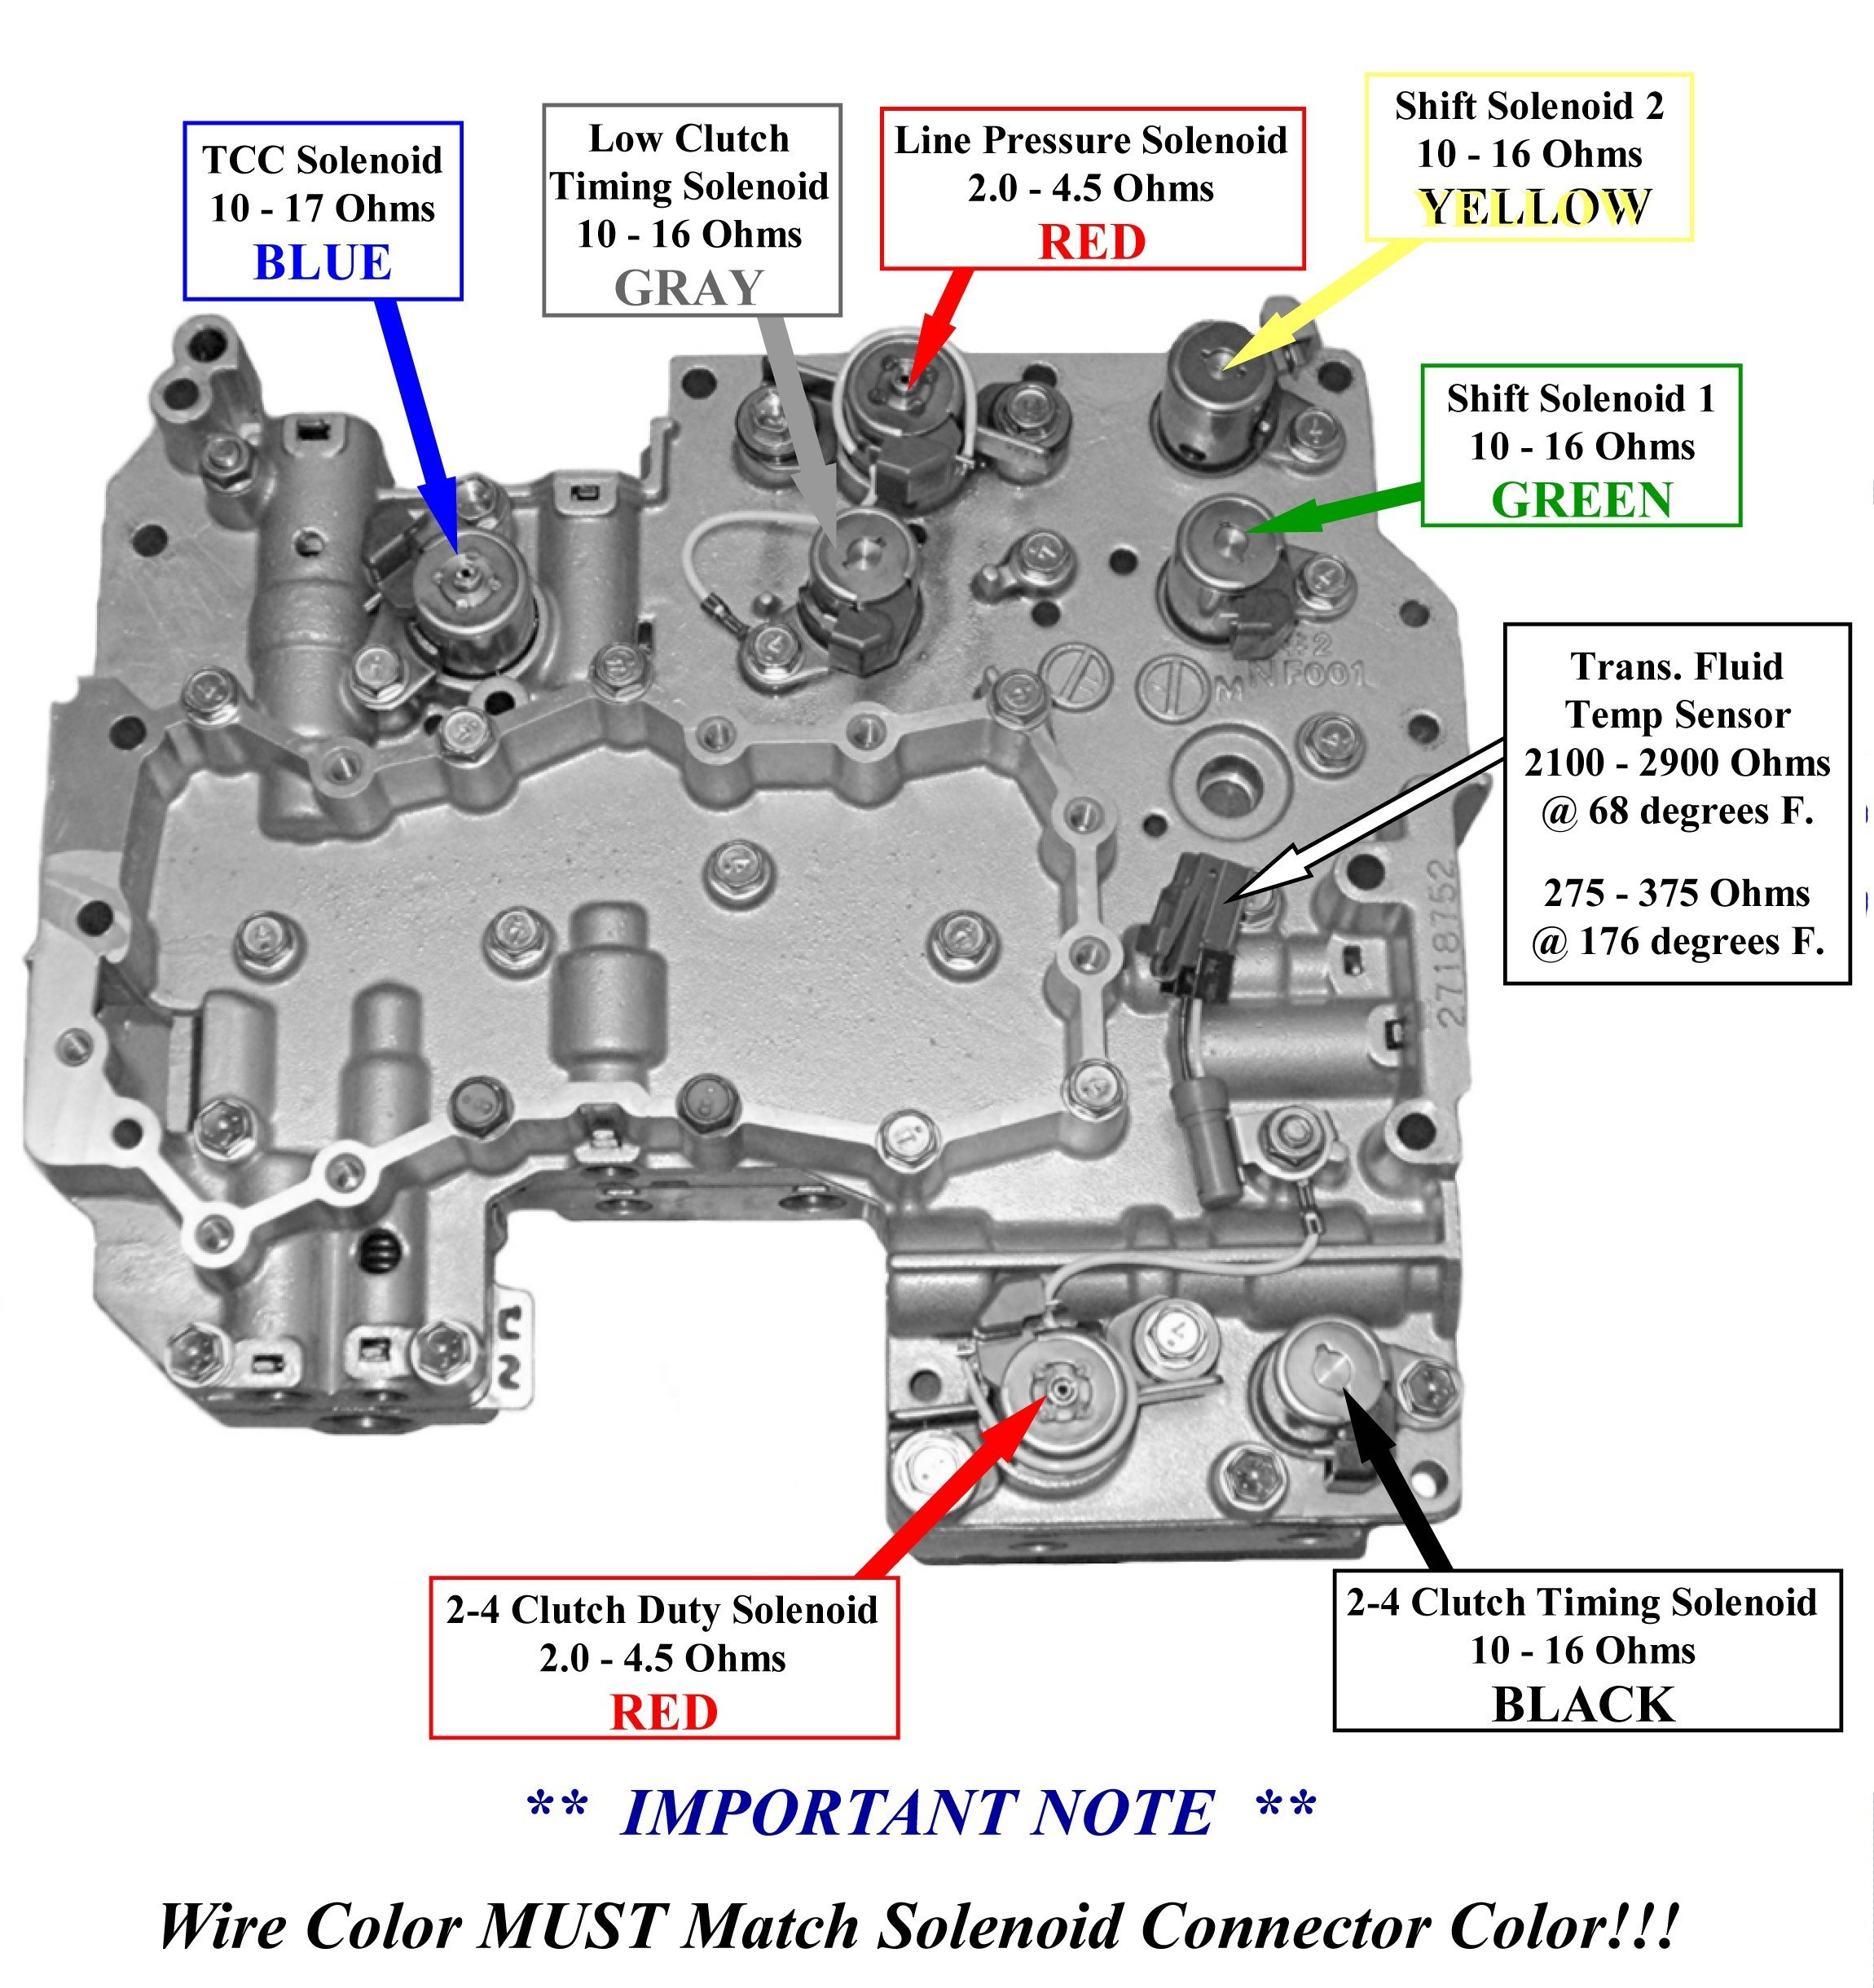 [SCHEMATICS_4UK]  CS_4276] Gm Automatic Transmission Diagrams Likewise 4T65E Transmission  Wiring Download Diagram | Gm 4l30e Wiring Diagram |  | Numdin Boapu Mohammedshrine Librar Wiring 101